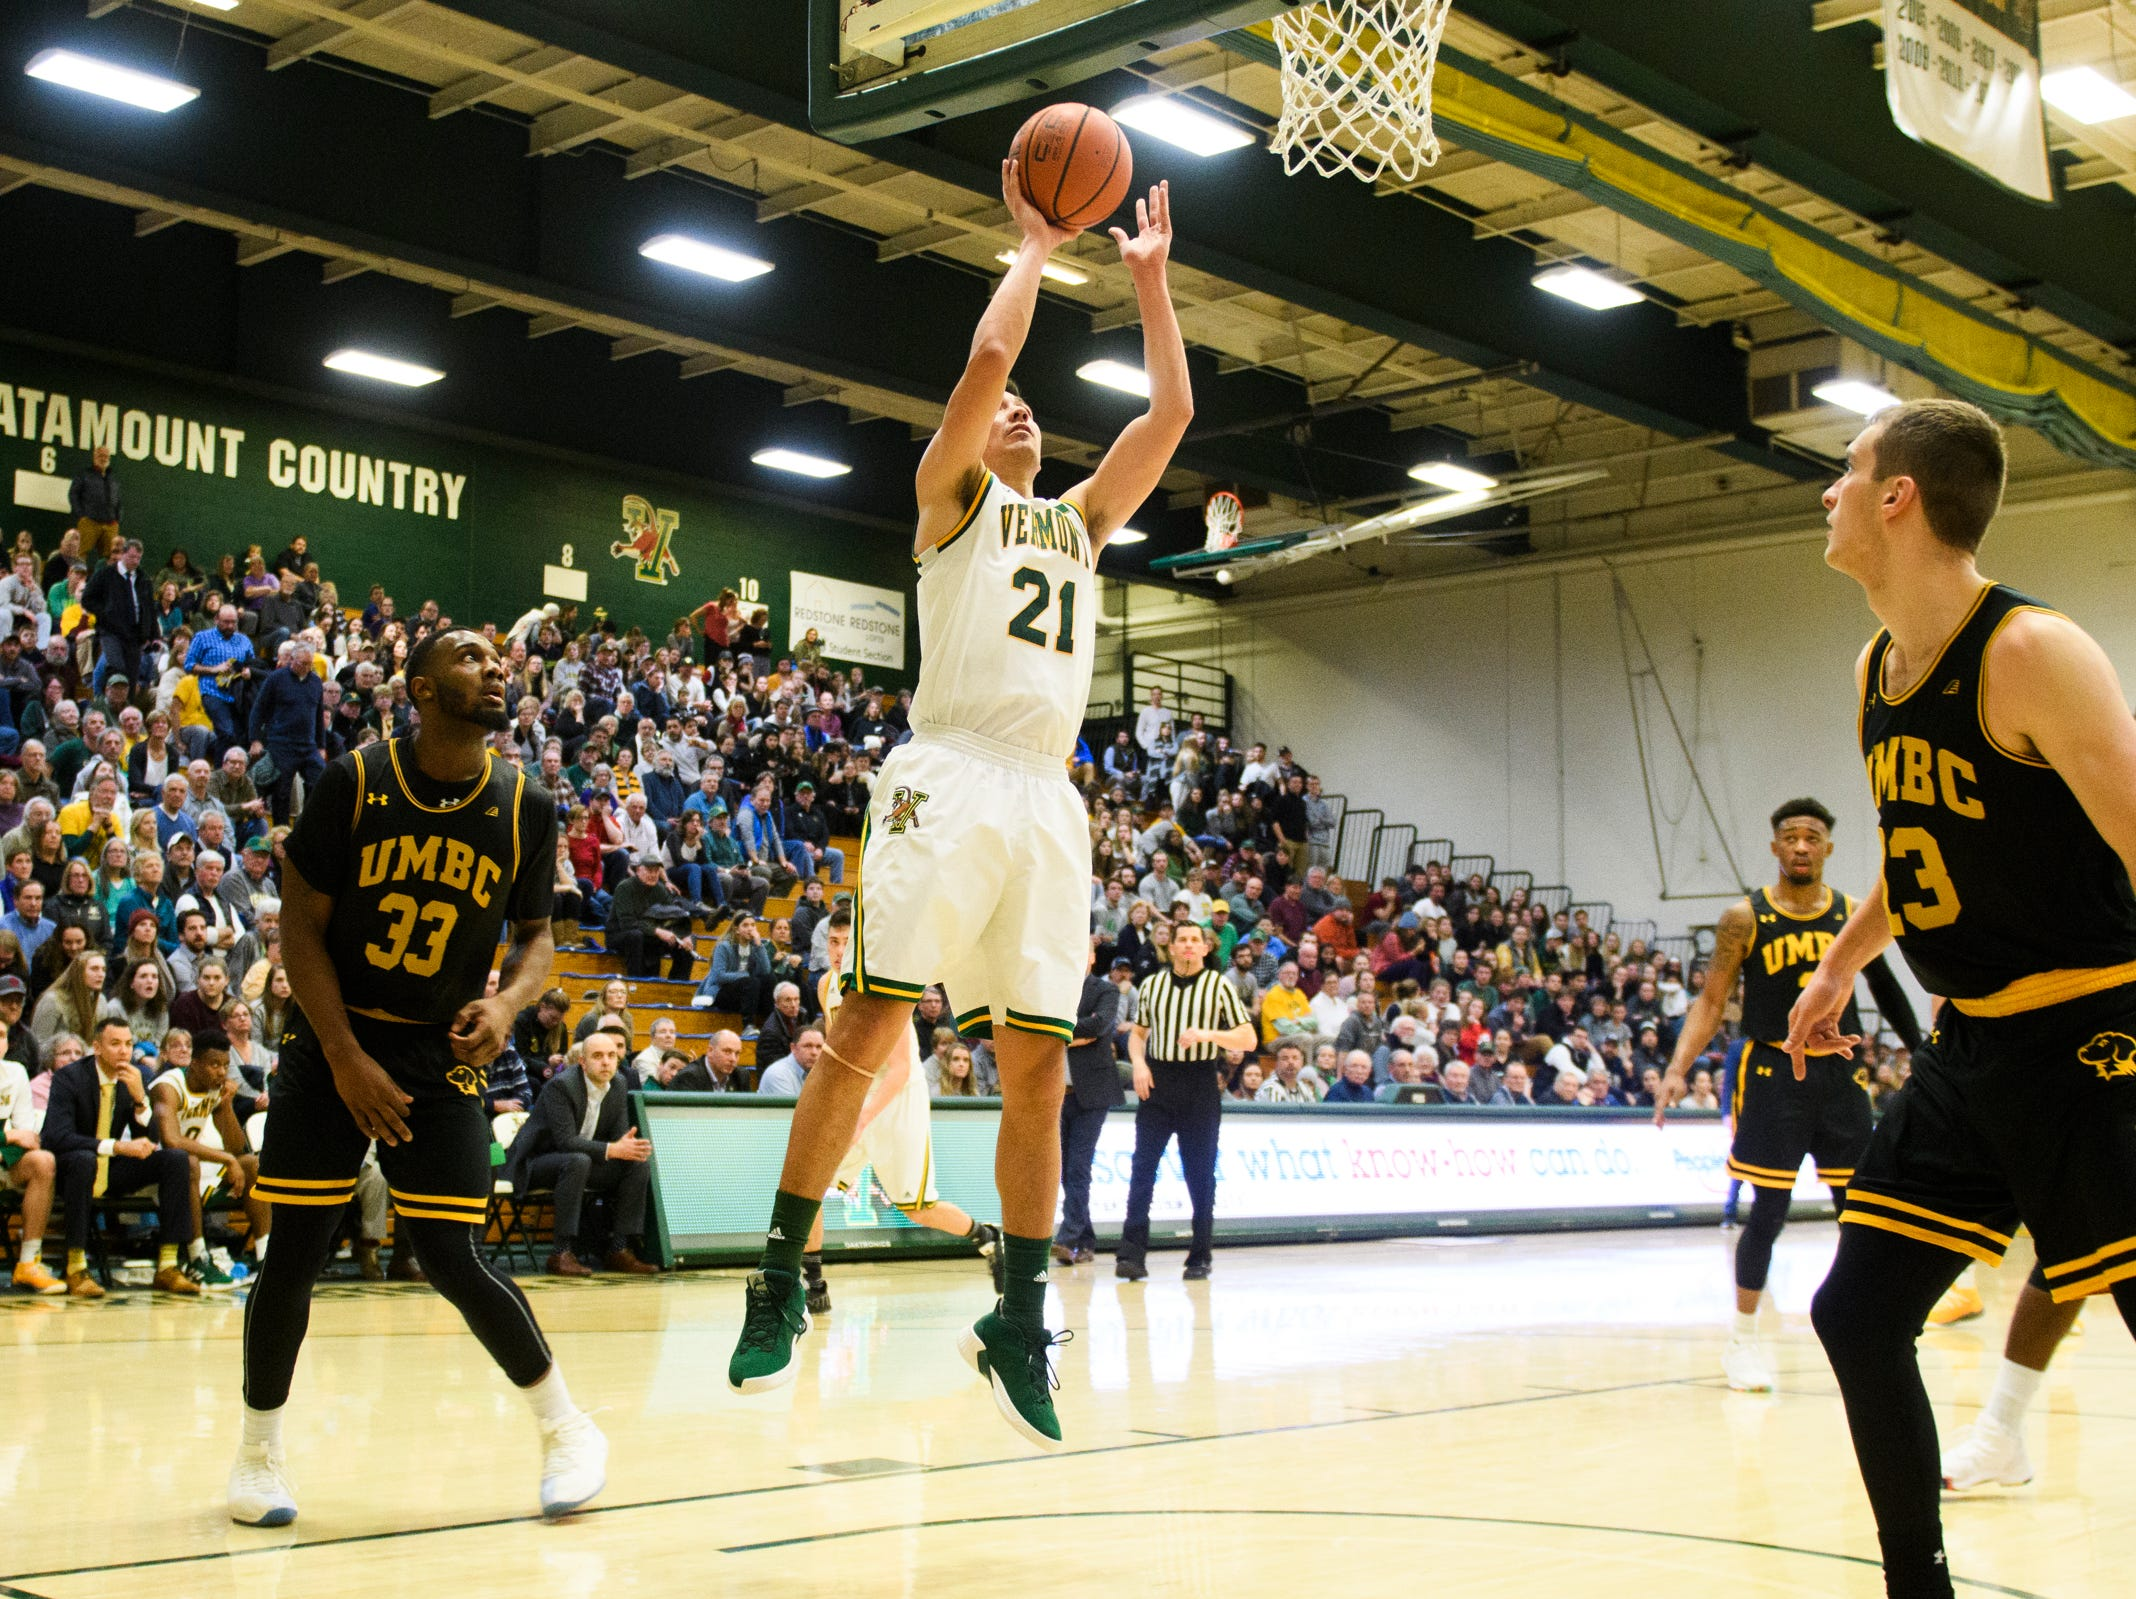 Vermont guard Everett Duncan (21) leaps for a lay up during the men's basketball game between the UMBC Retrievers and the Vermont Catamounts at Patrick Gym on Wednesday night January 23, 2019 in Burlington, Vermont.